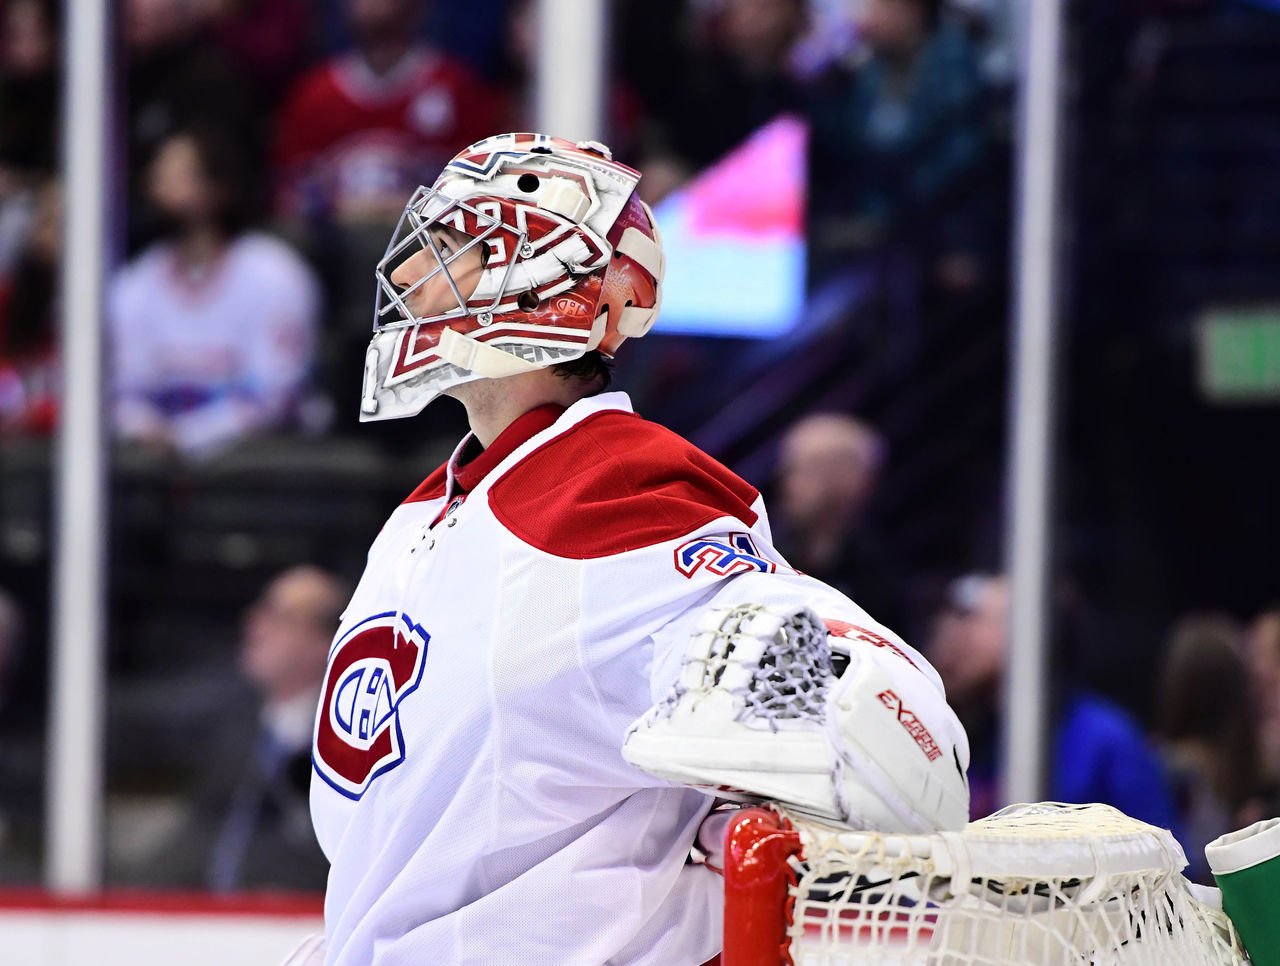 Cropped 2017 02 08t040305z 1793315154 nocid rtrmadp 3 nhl montreal canadiens at colorado avalanche